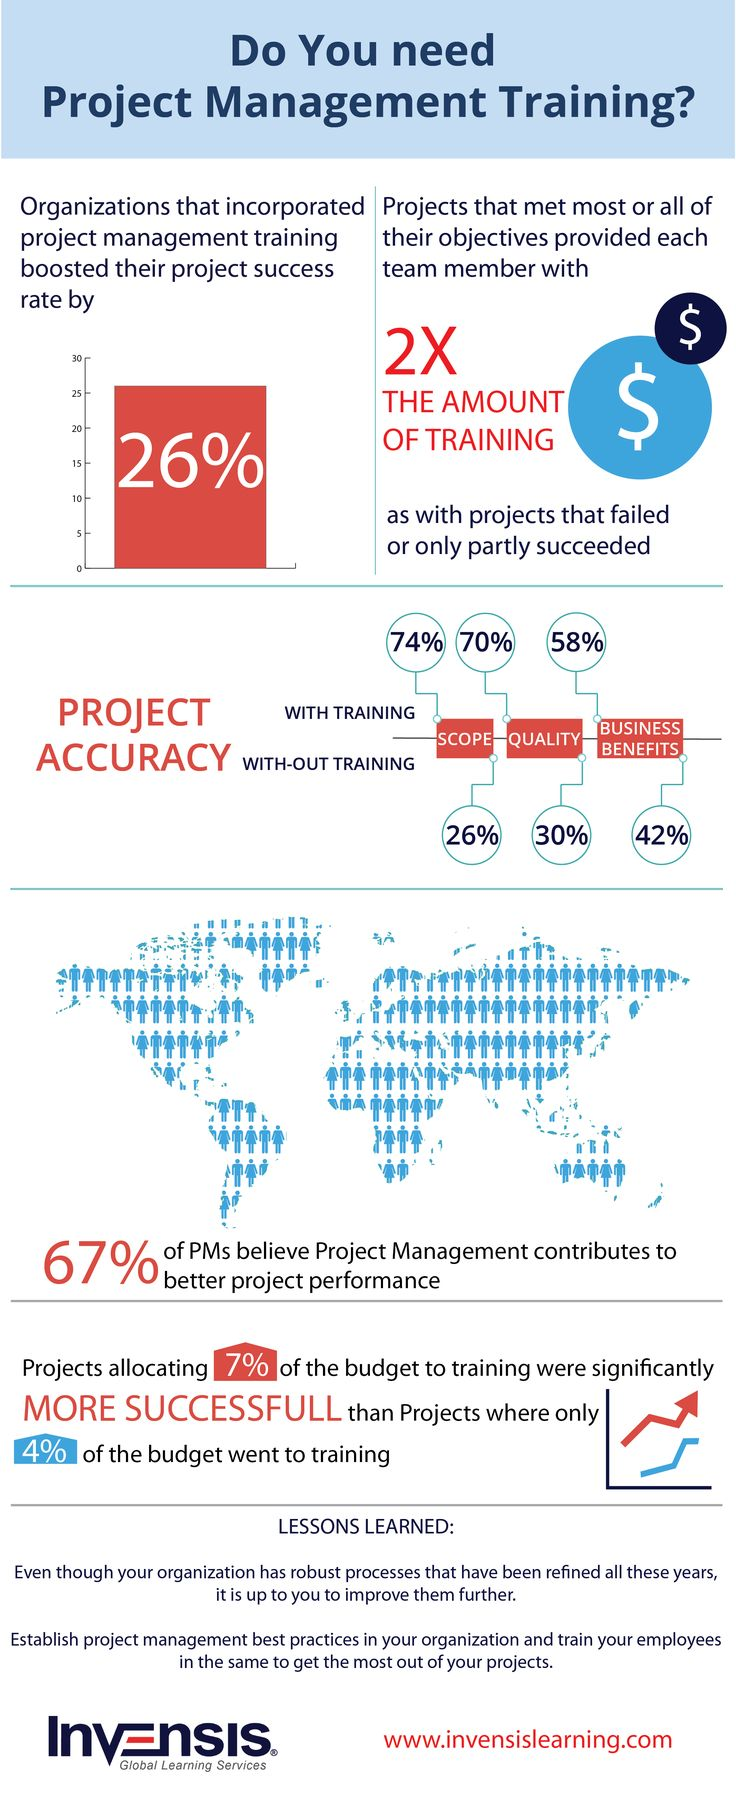 best ideas about project management certification an infographic depicting why you need project management certification training understand how organizations that incorporated project management training